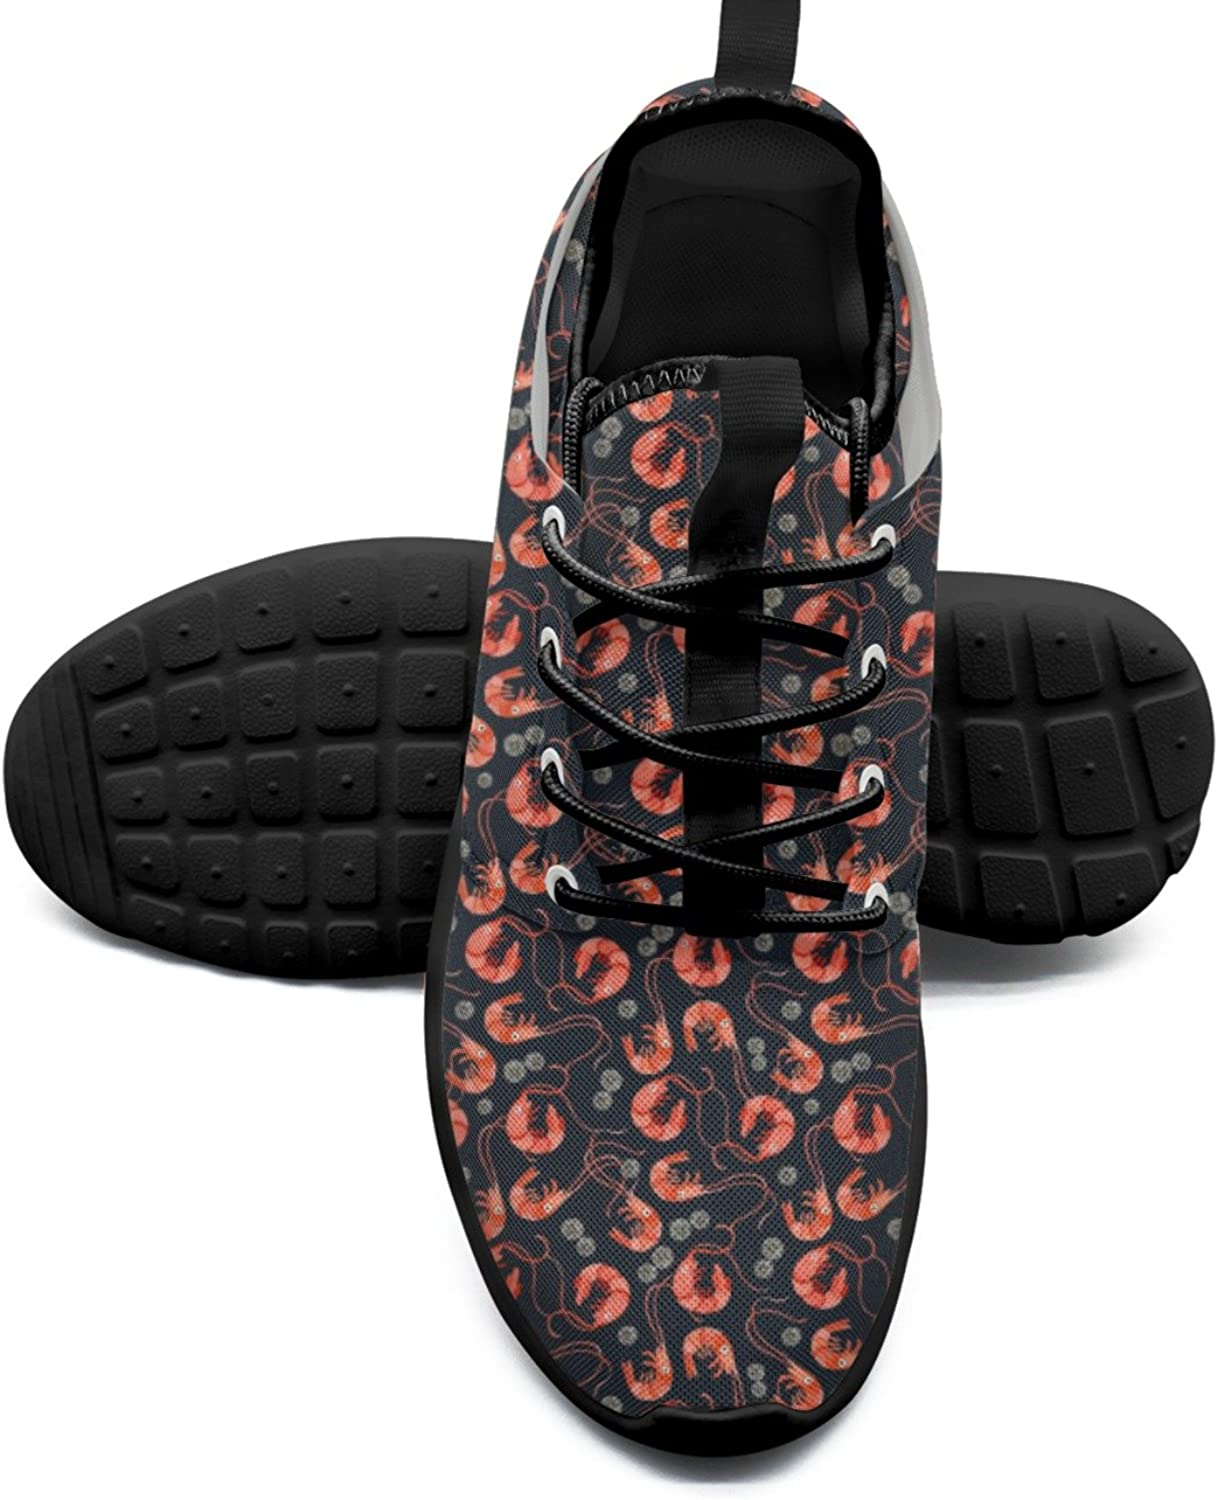 FAAERD Women's Fashion Lightweight Sneakers shoes Red Shrimps Summer Shrimps Beach Simple Sports shoes